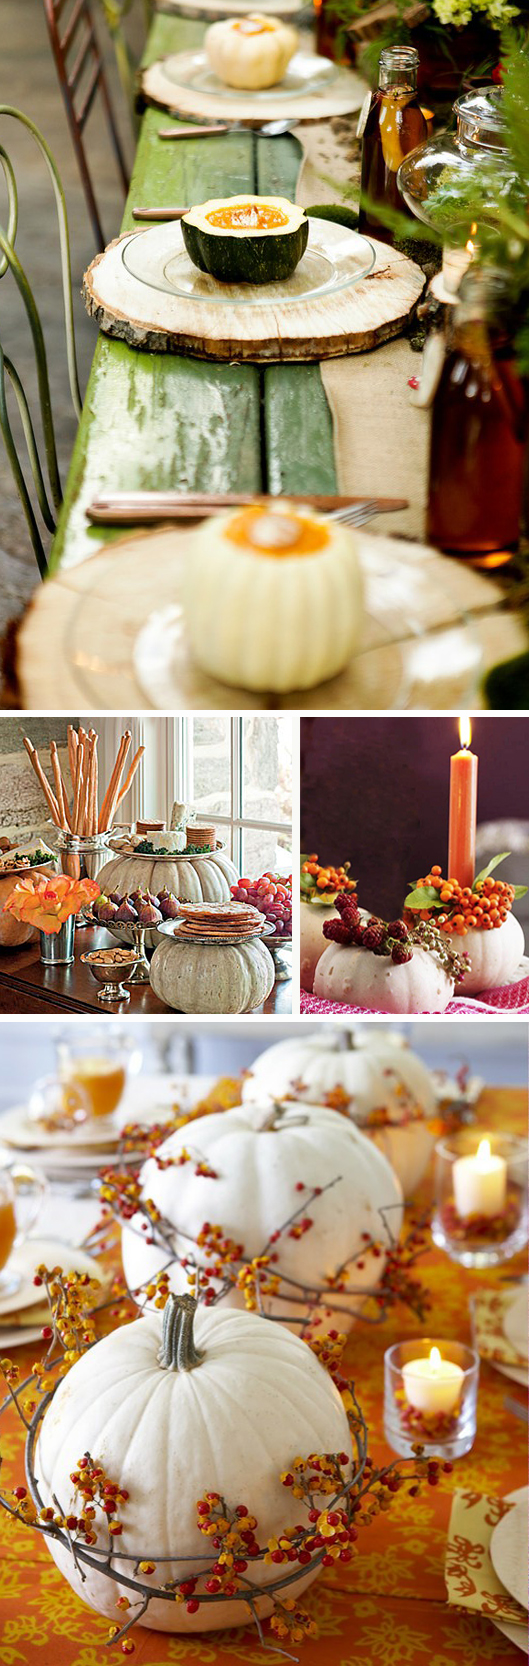 White Pumpkins for Fall Wedding Décor | All I LIKE